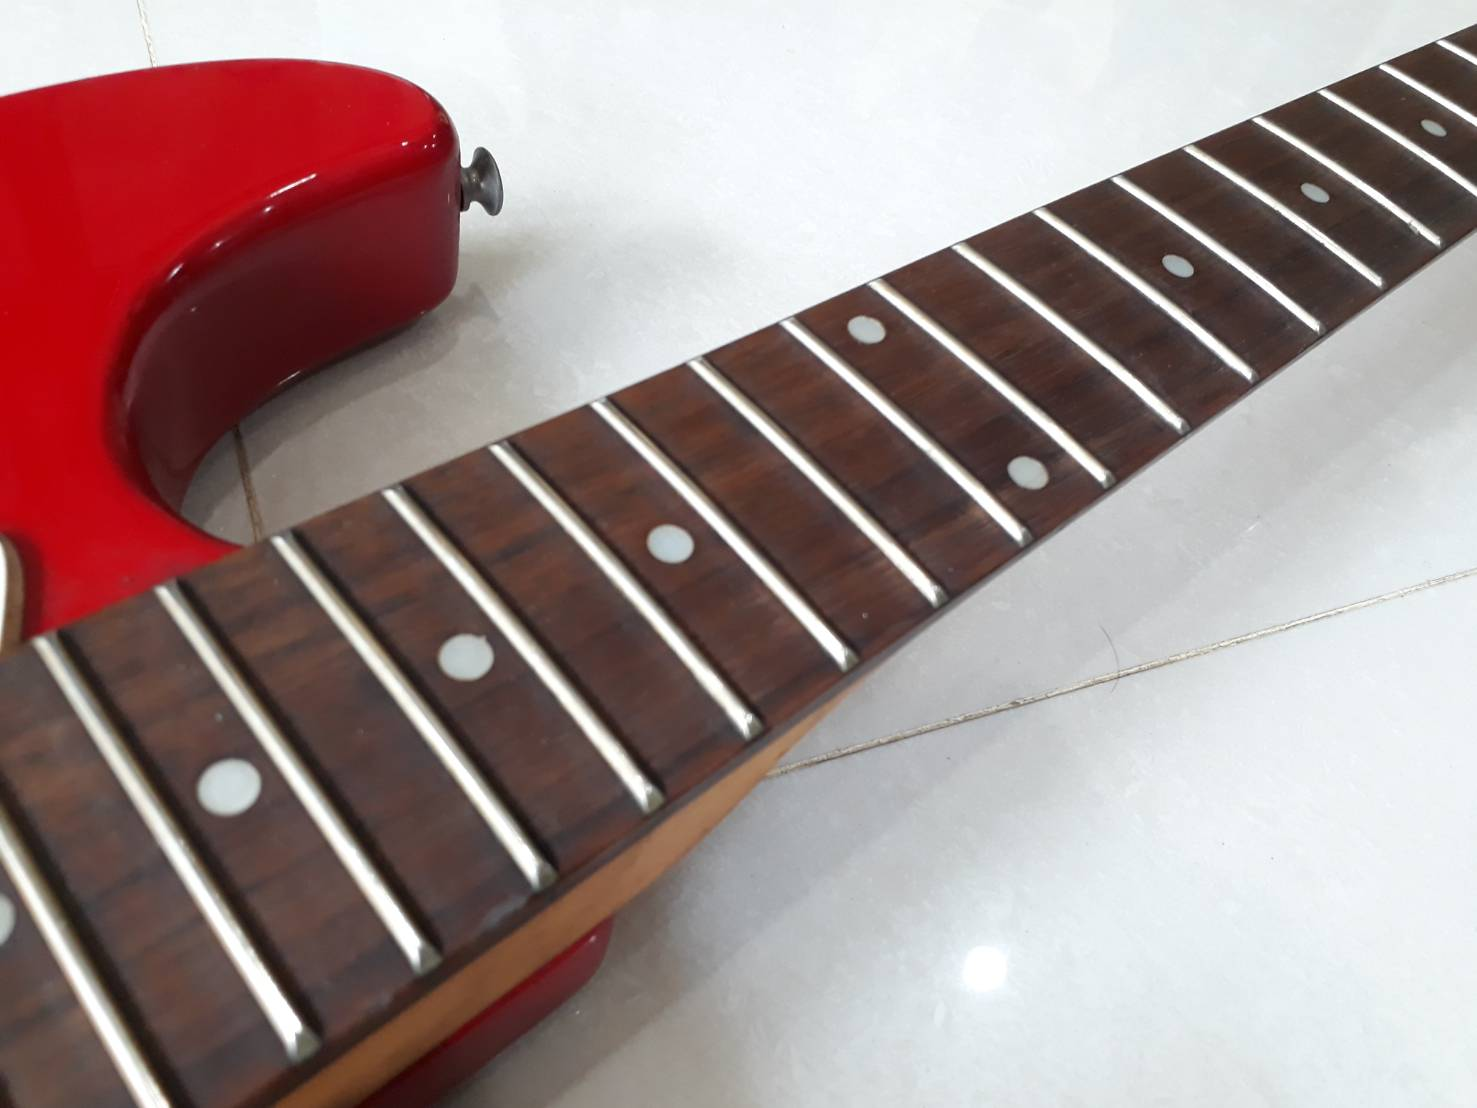 Photogenic strat red